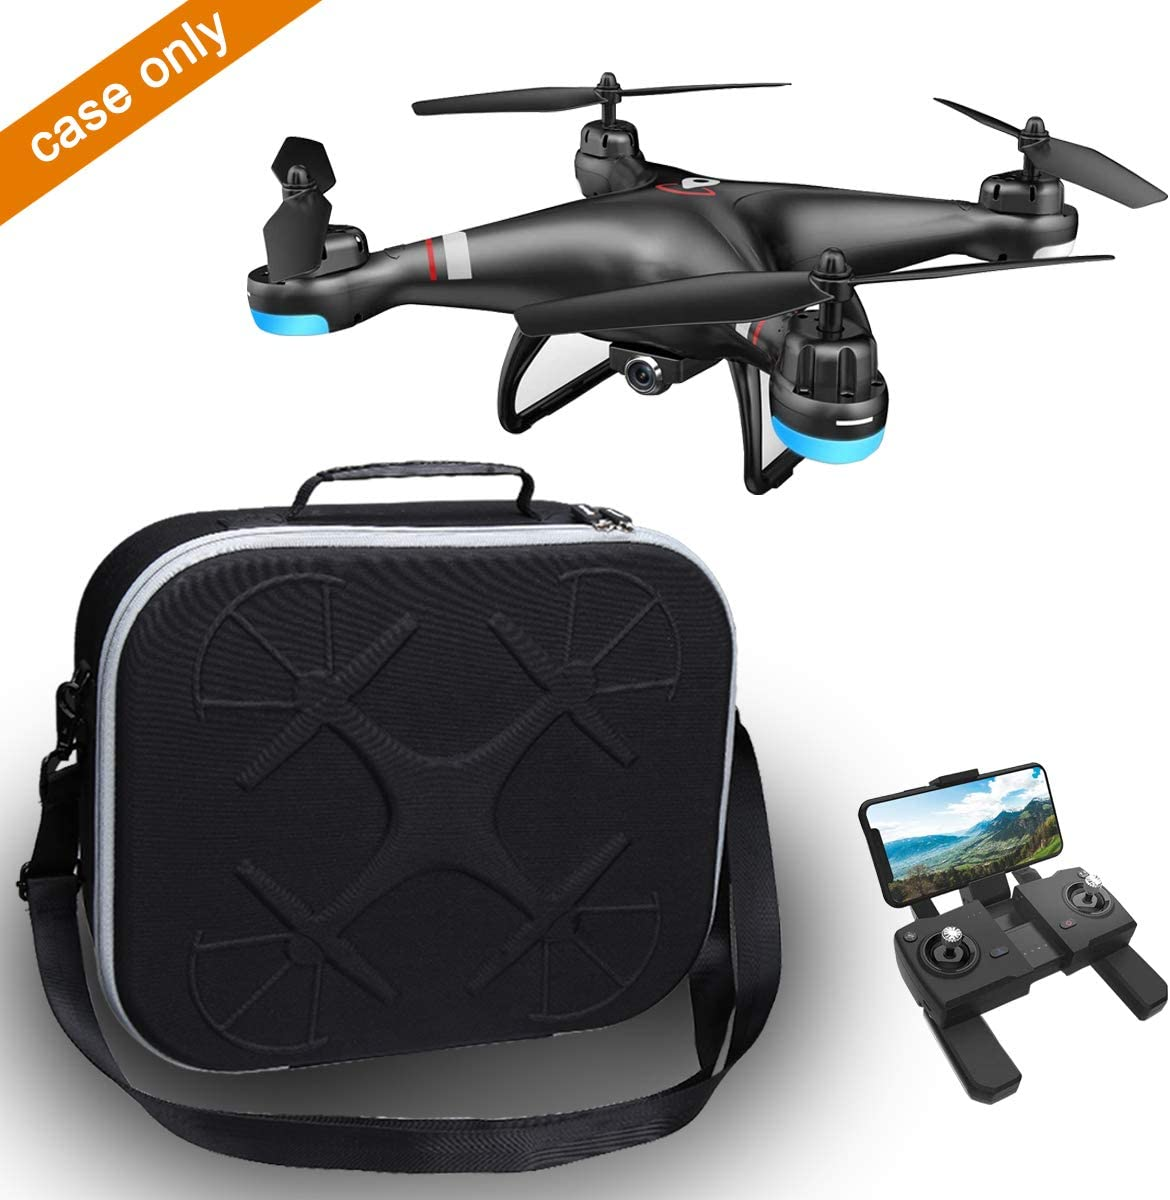 SNAPTAIN SP650// SNAPTAIN SP600 WiFi FPV Drone CASE ONLY Aproca Hard Protective Storage Case for Holy Stone HS110G